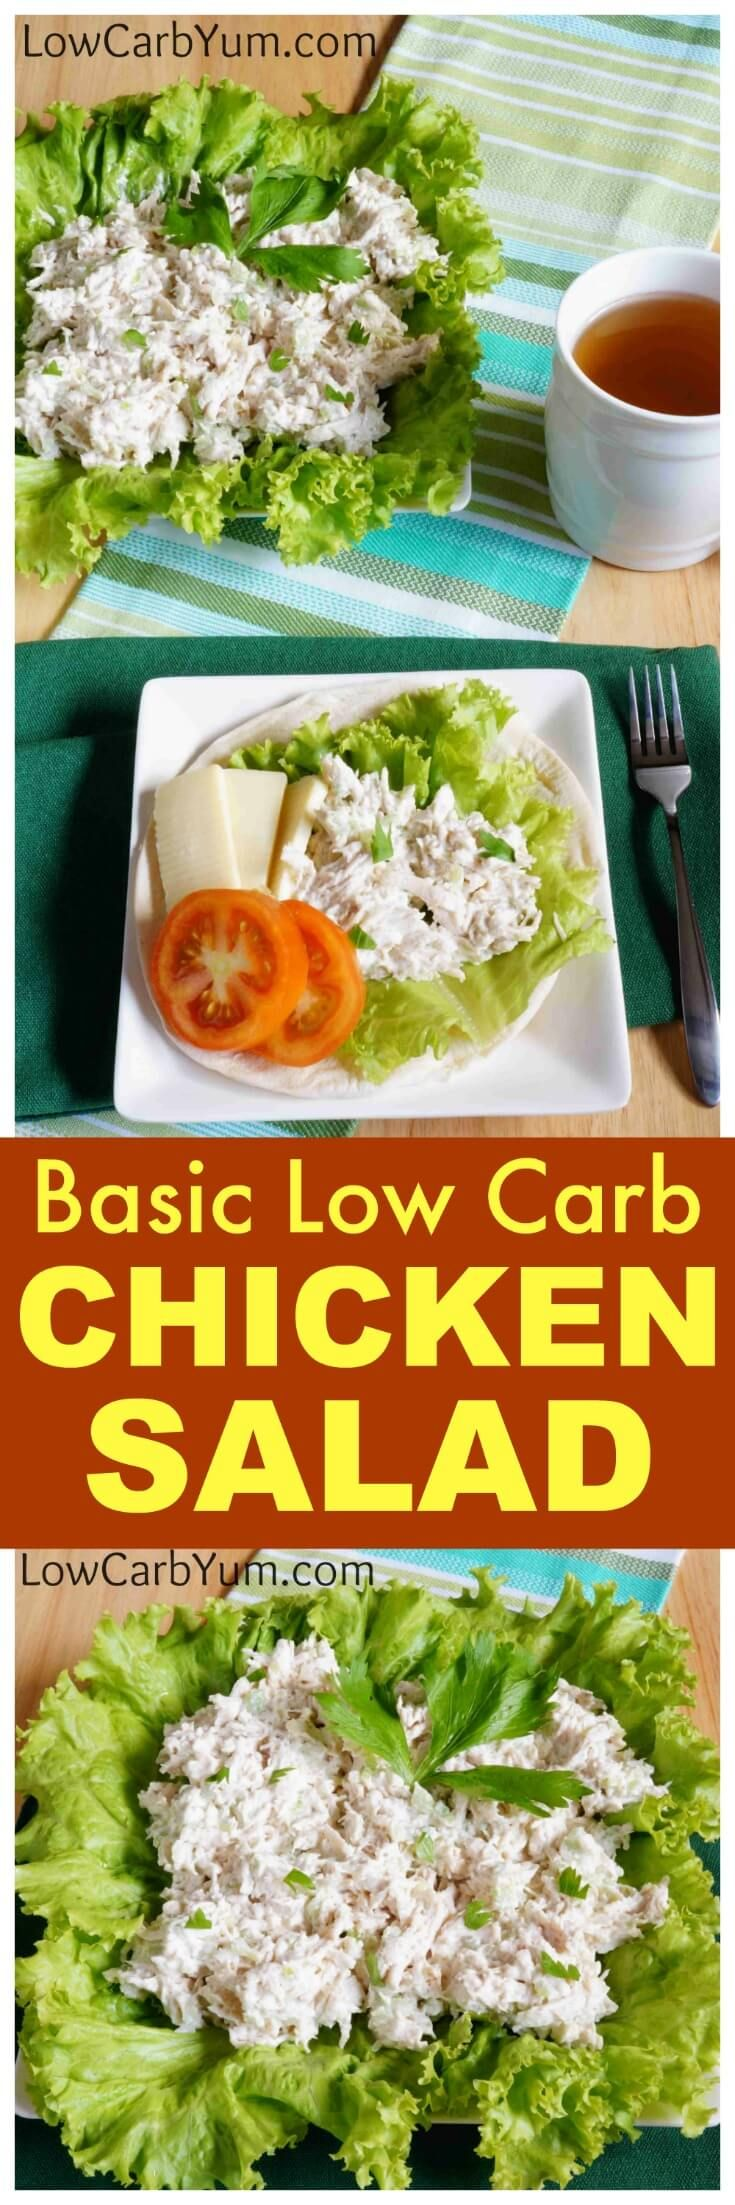 ... chicken salad recipe, Simple chicken salad and Basic chicken salad